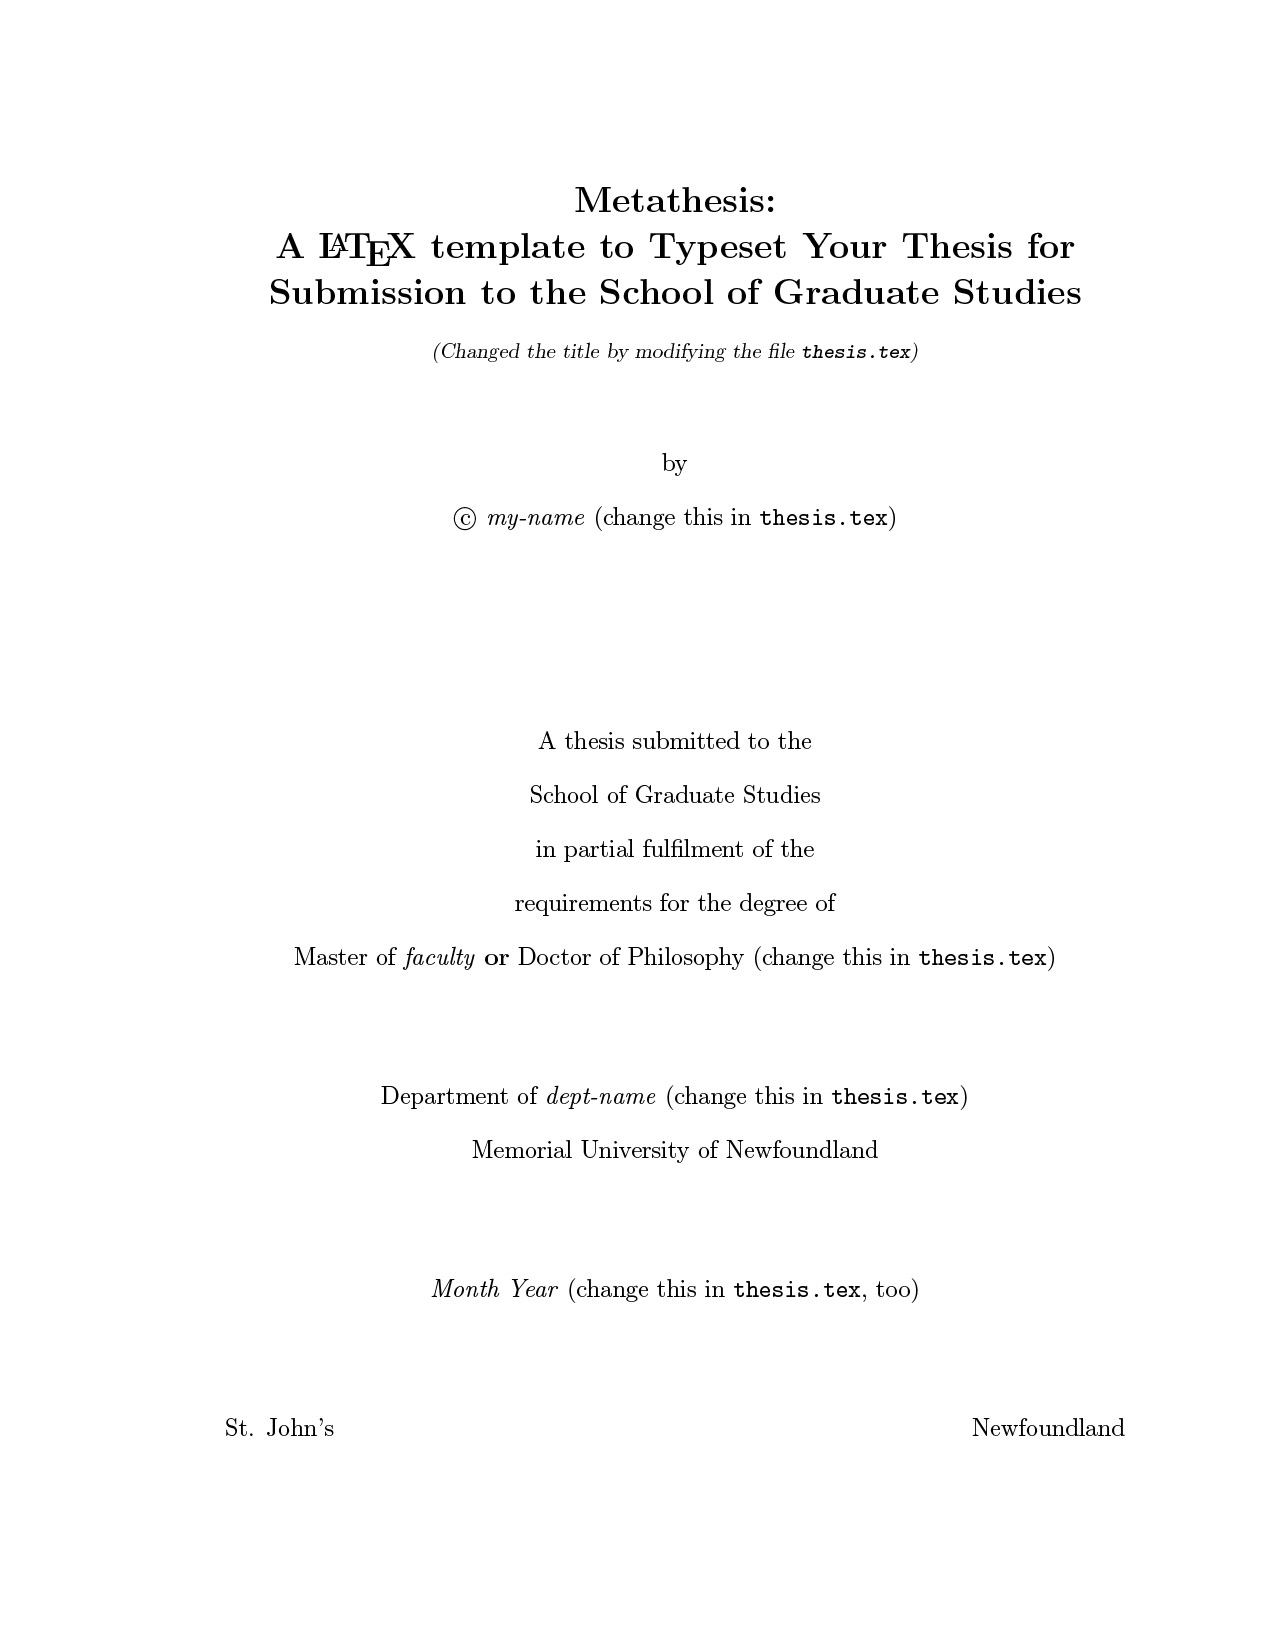 carleton university thesis template latex